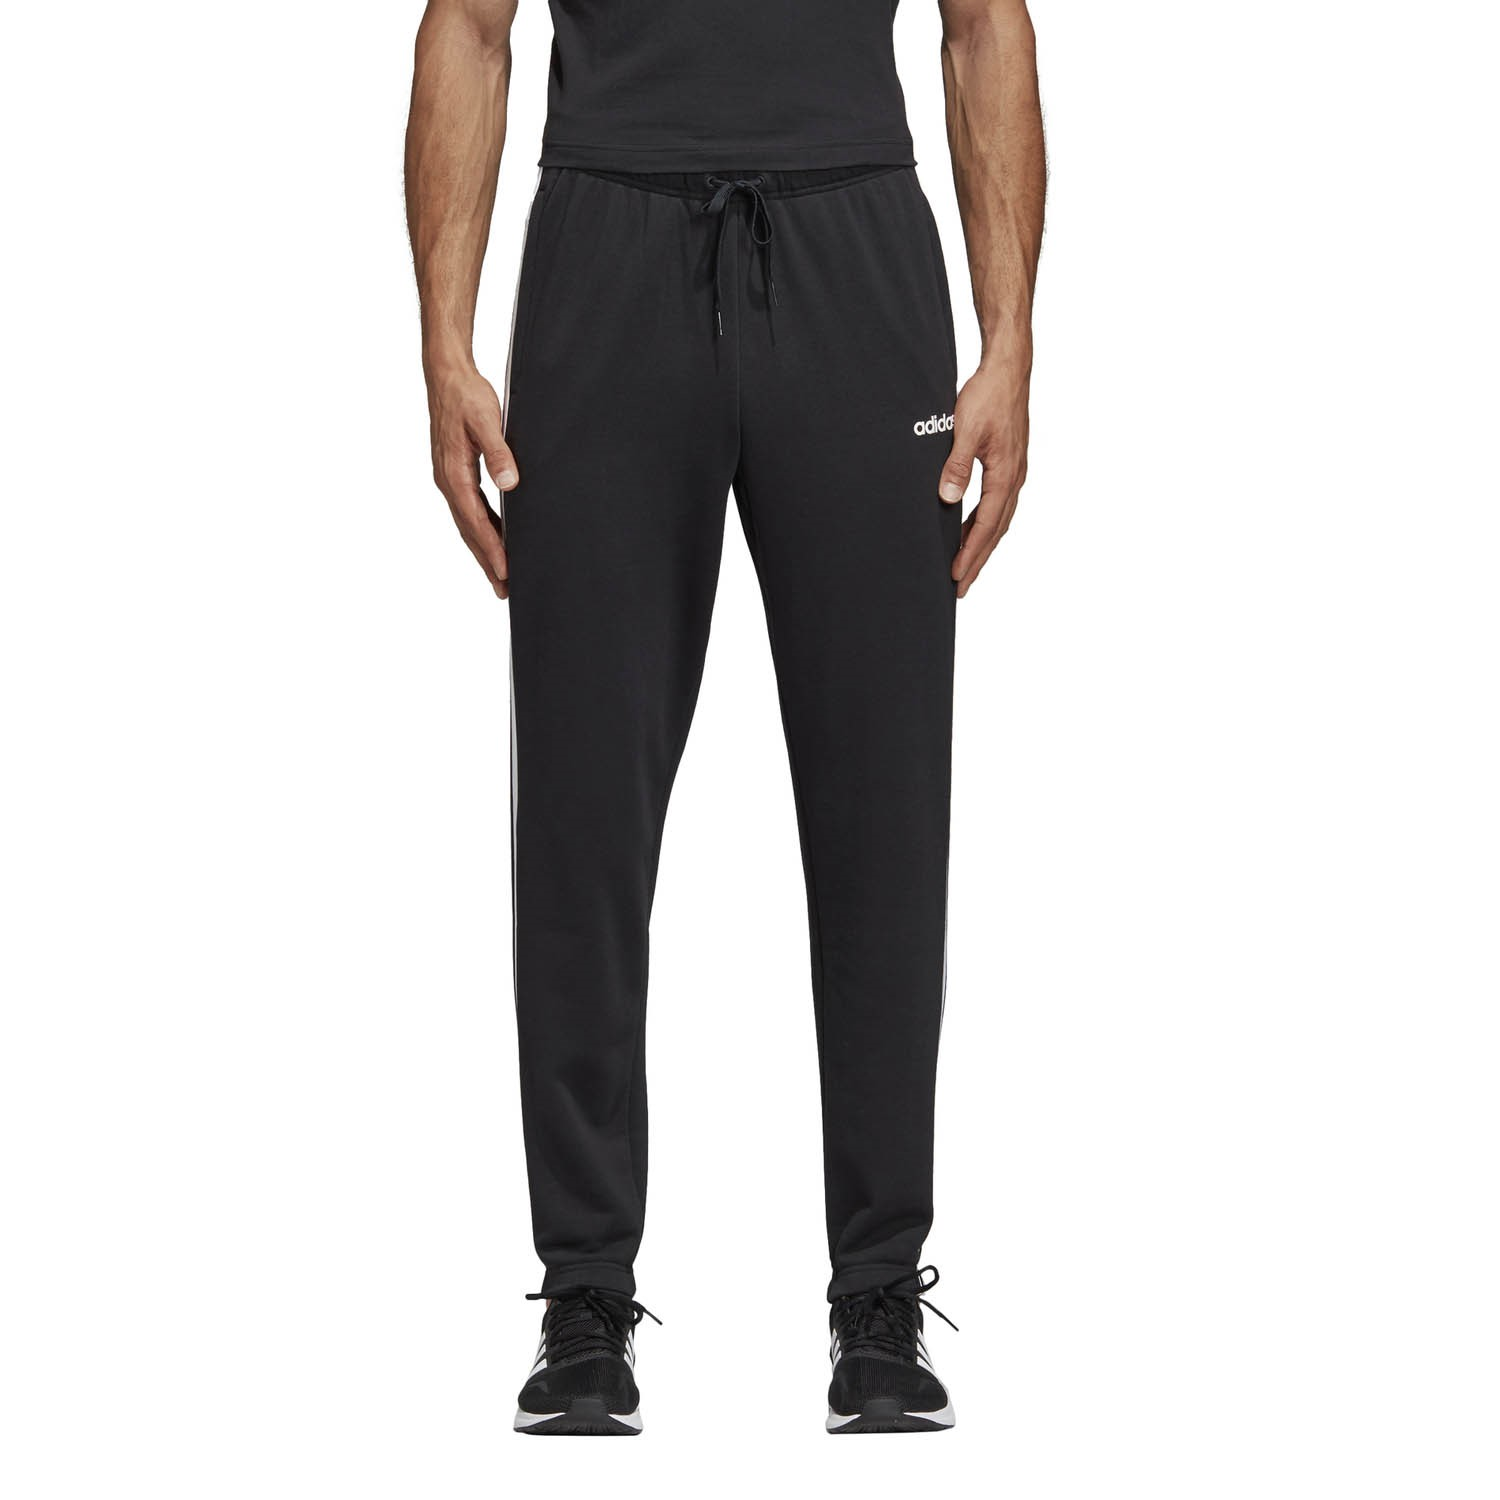 afa1ca41af5496 Adidas Essentials 3-Stripes Tapered Mens Track Pants - Black White ...